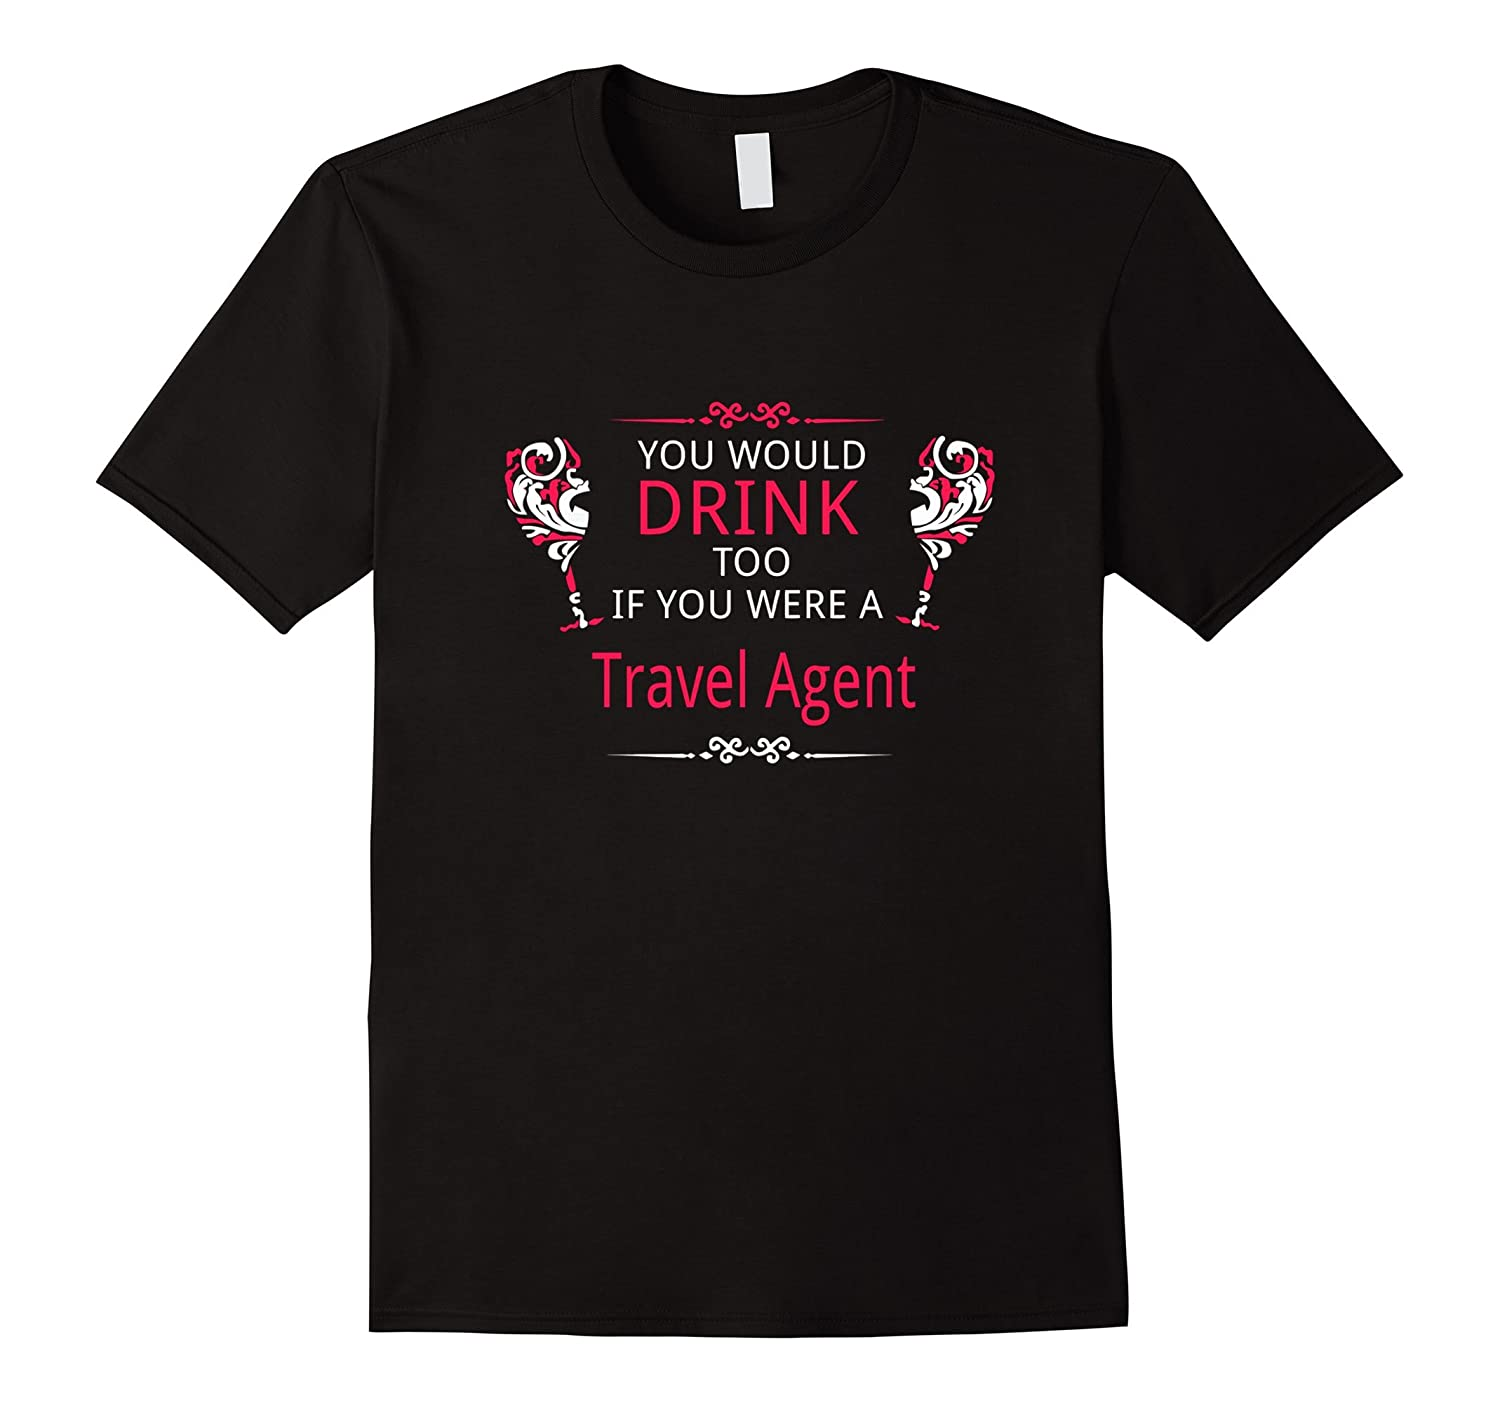 Youd Drink Too If You Were A Travel Agent T-Shirt-TD